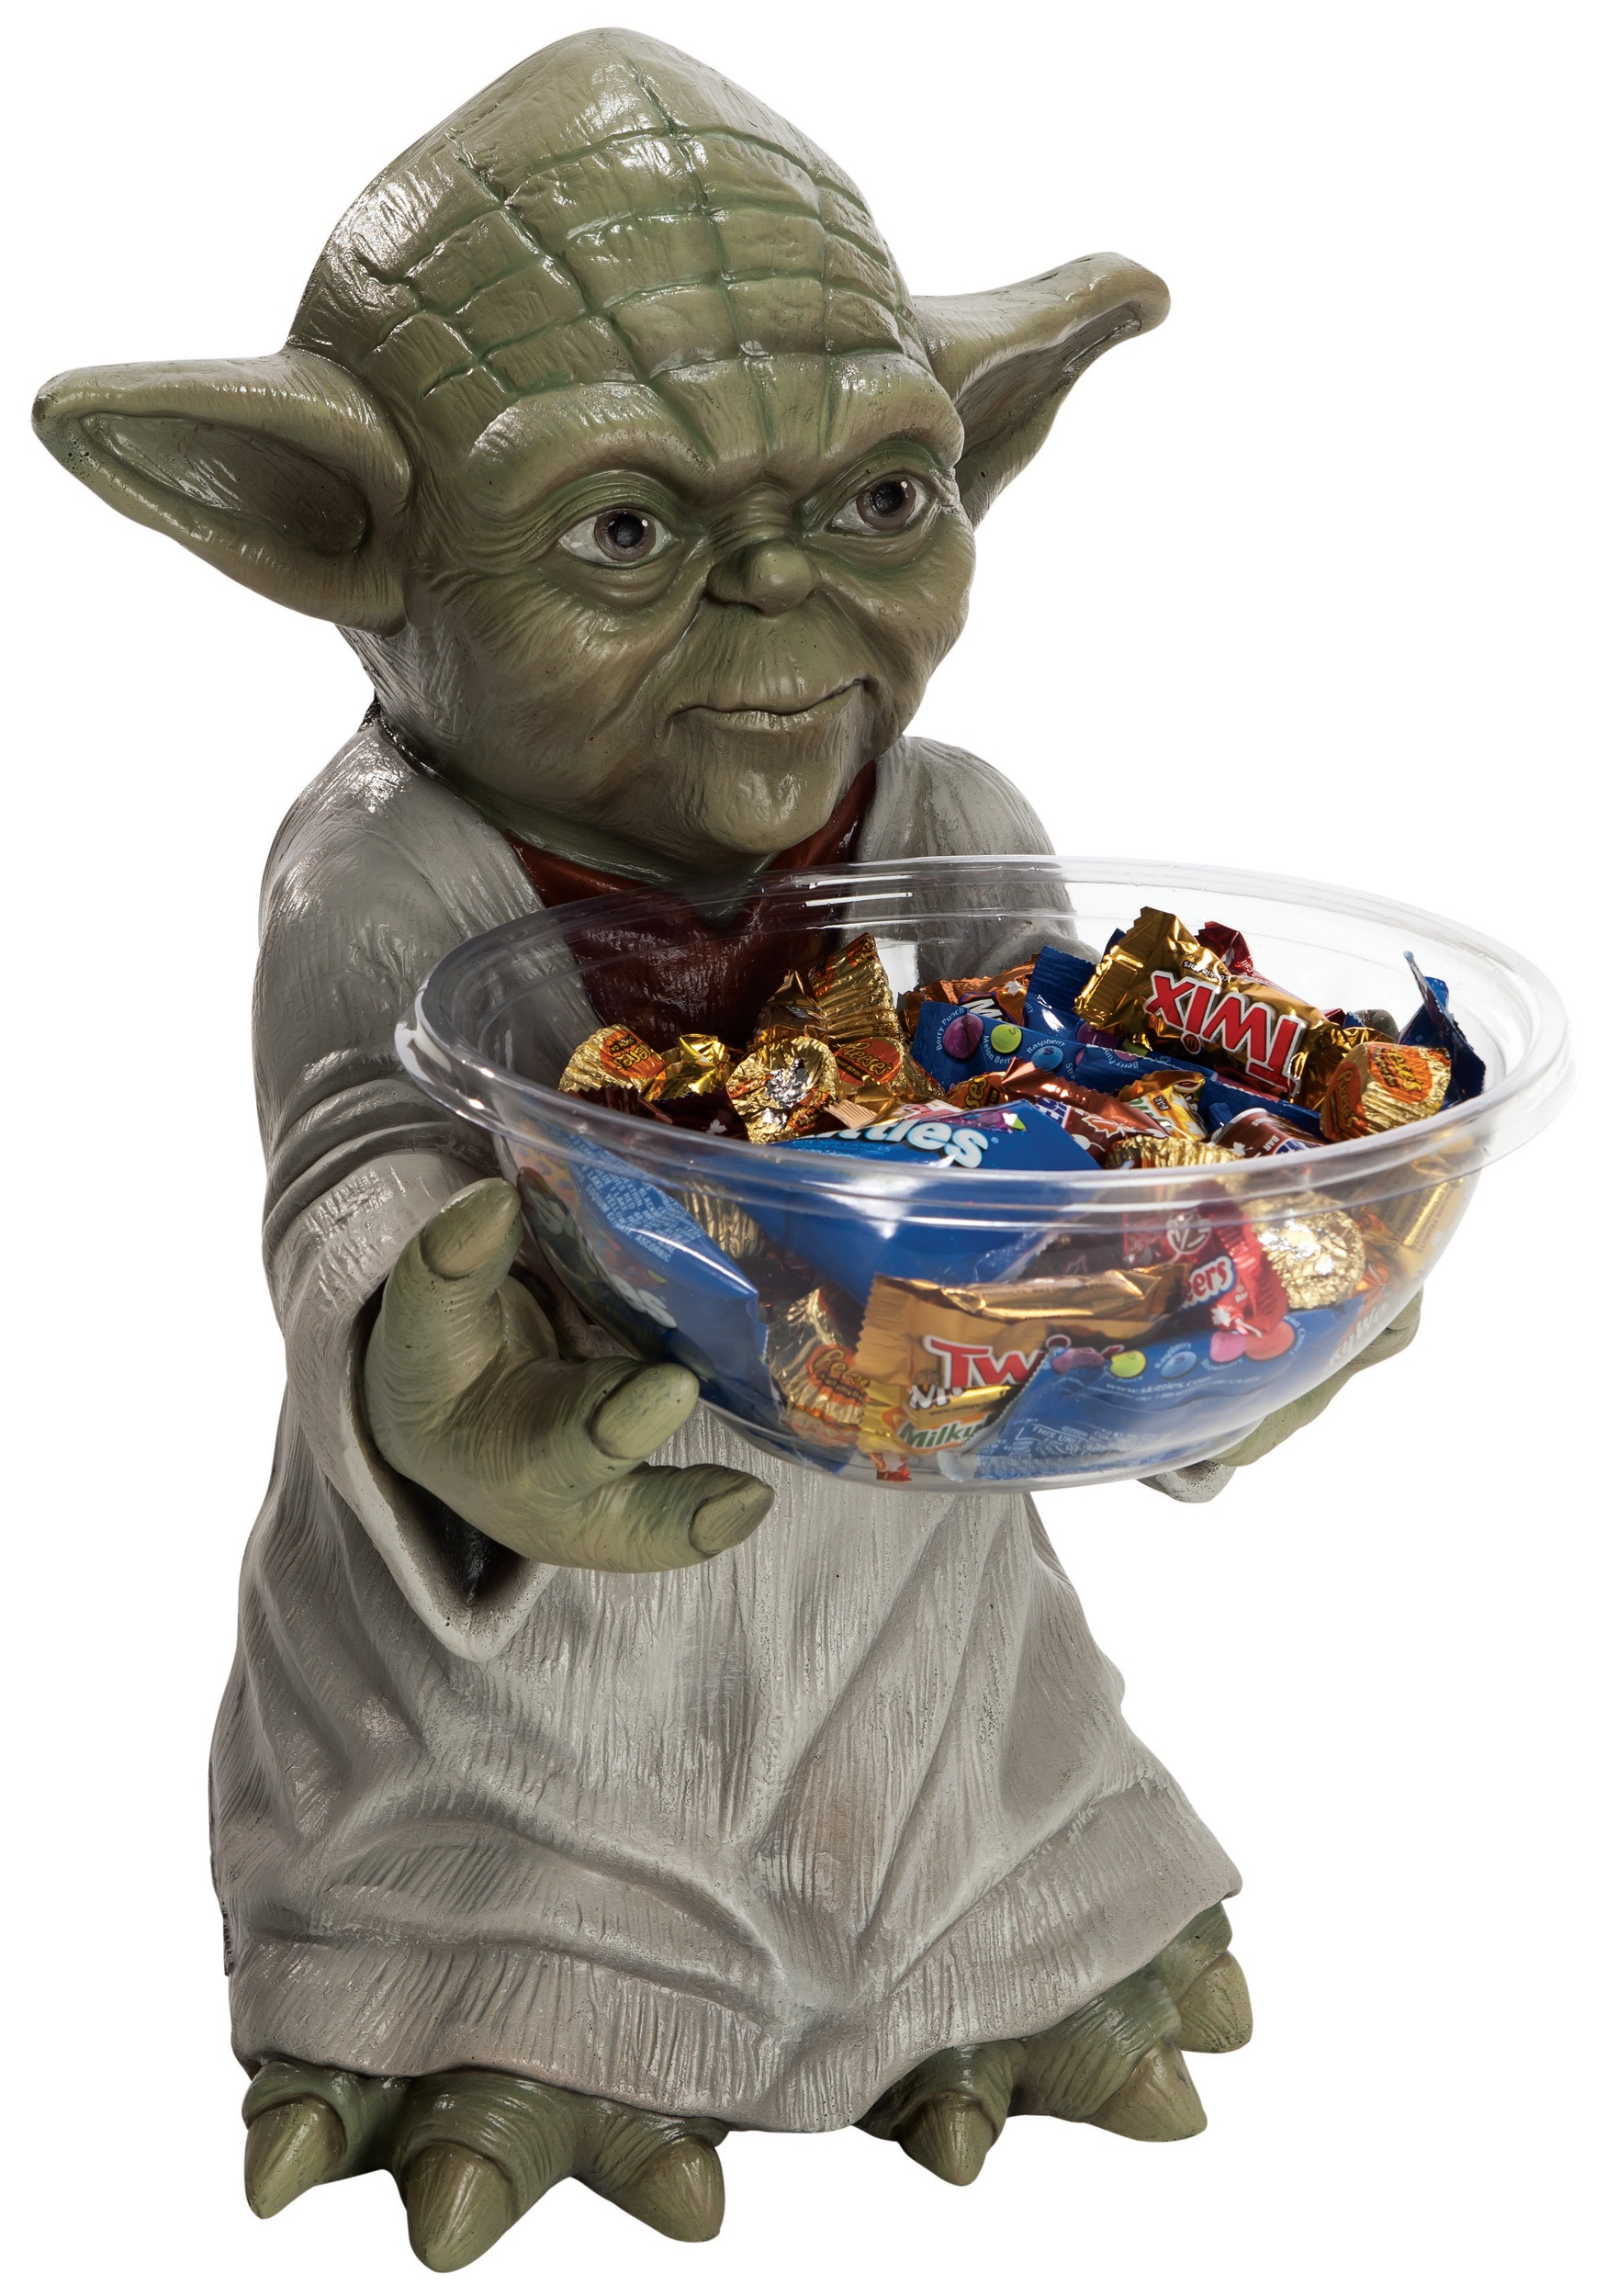 yoda halloween candy bowl holder - yoda decorations, star wars